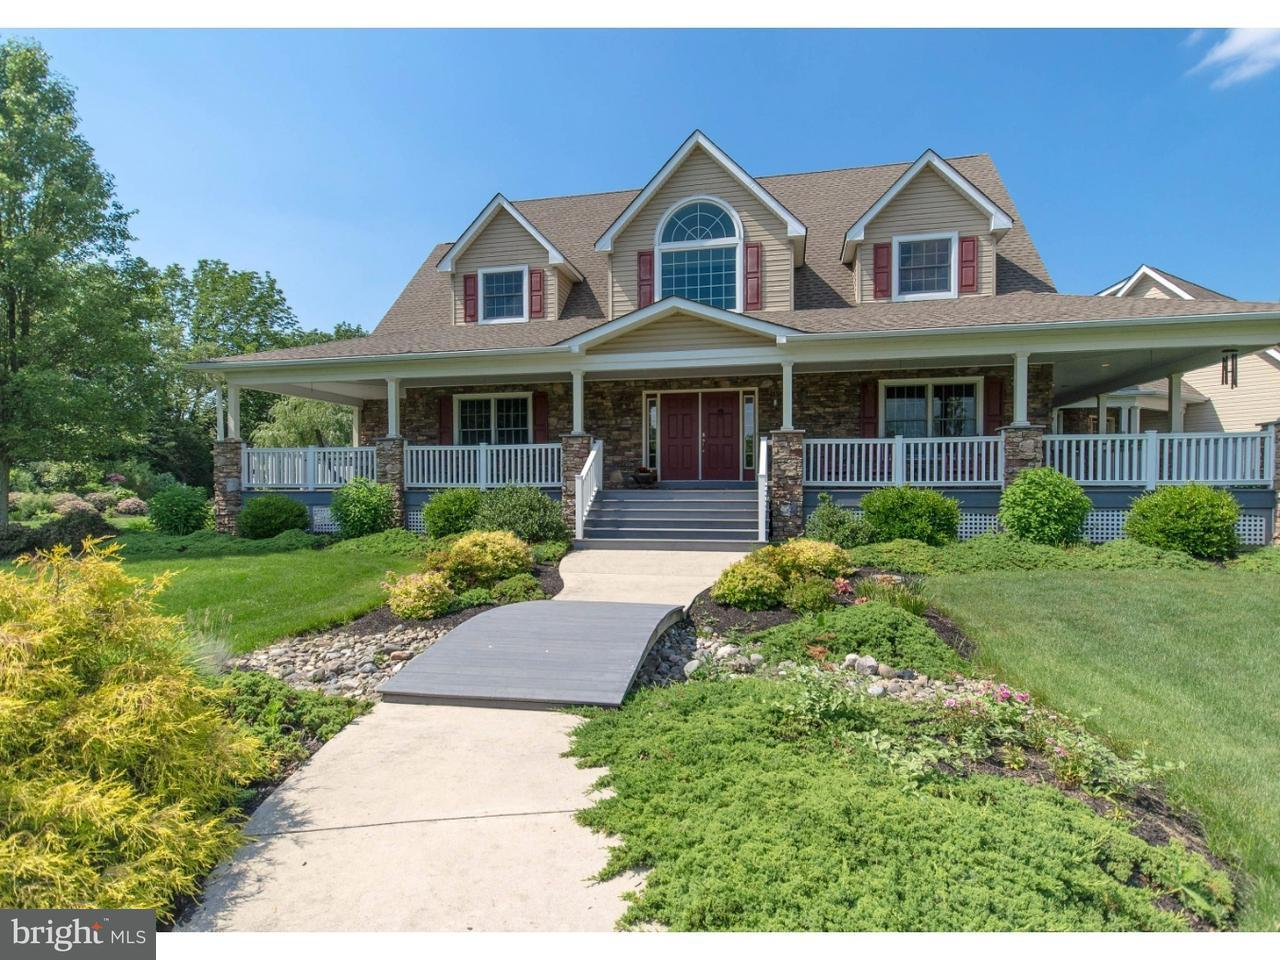 Single Family Home for Sale at 2144 KUMRY Road Quakertown, Pennsylvania 18951 United States